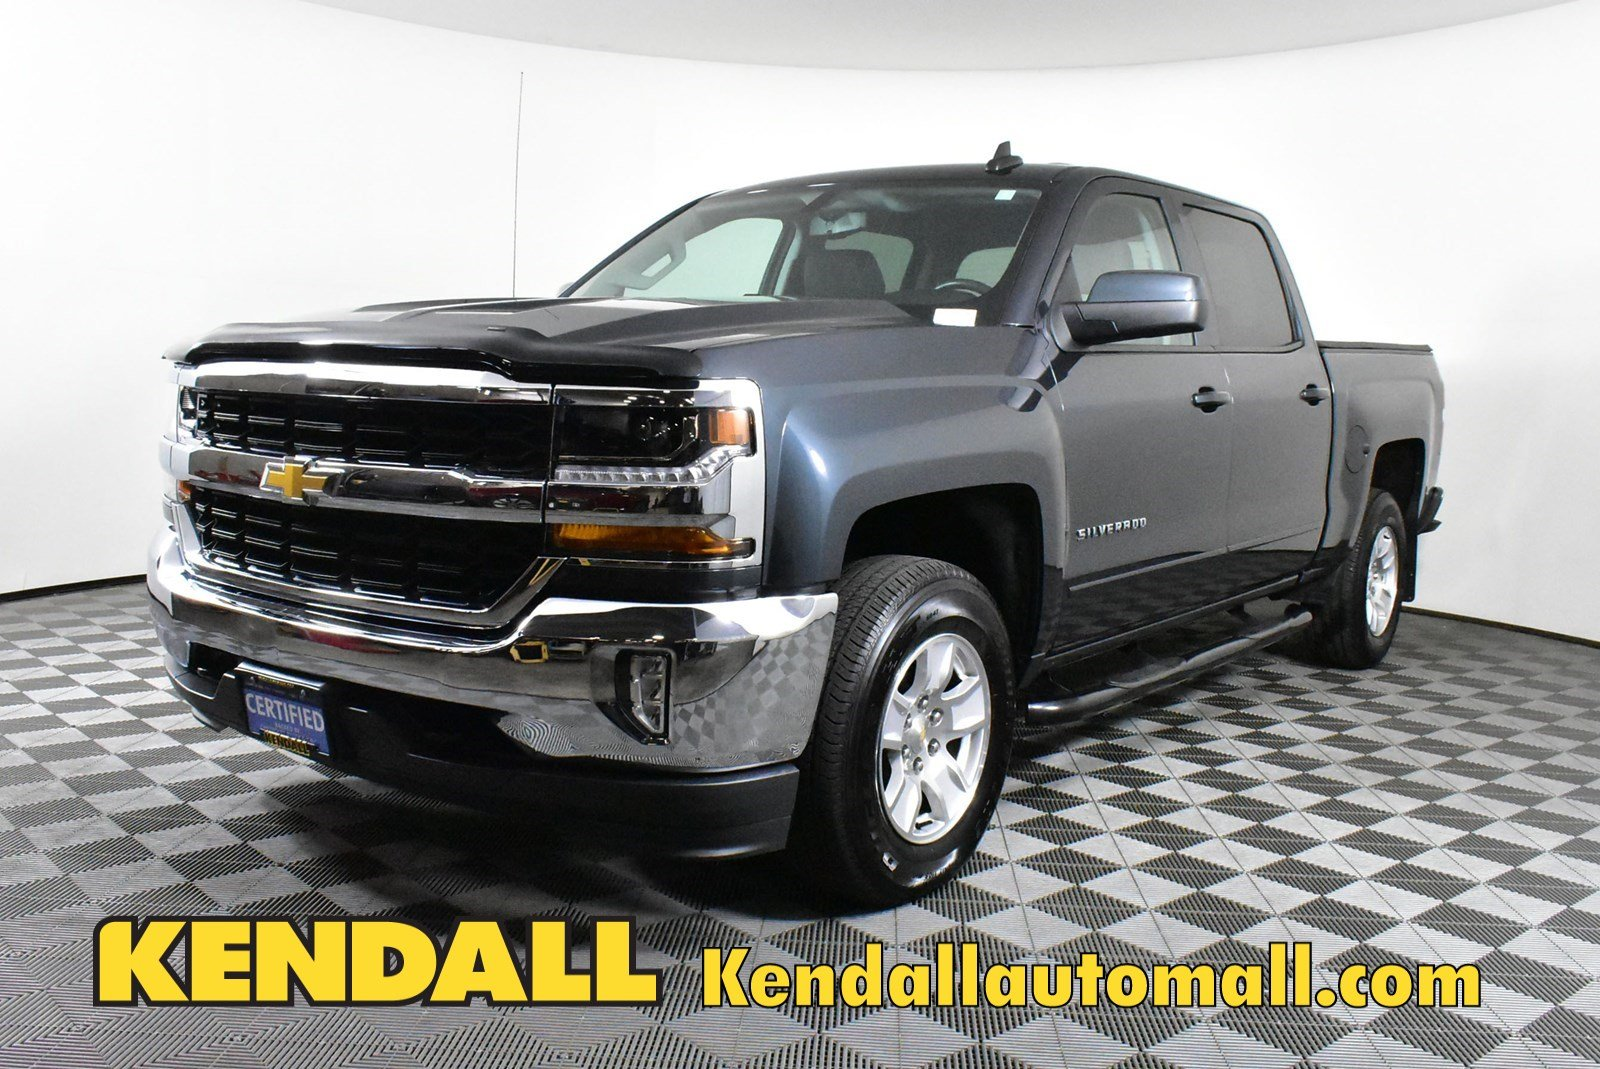 Certified Pre-Owned 2018 Chevrolet Silverado 1500 LT4WD